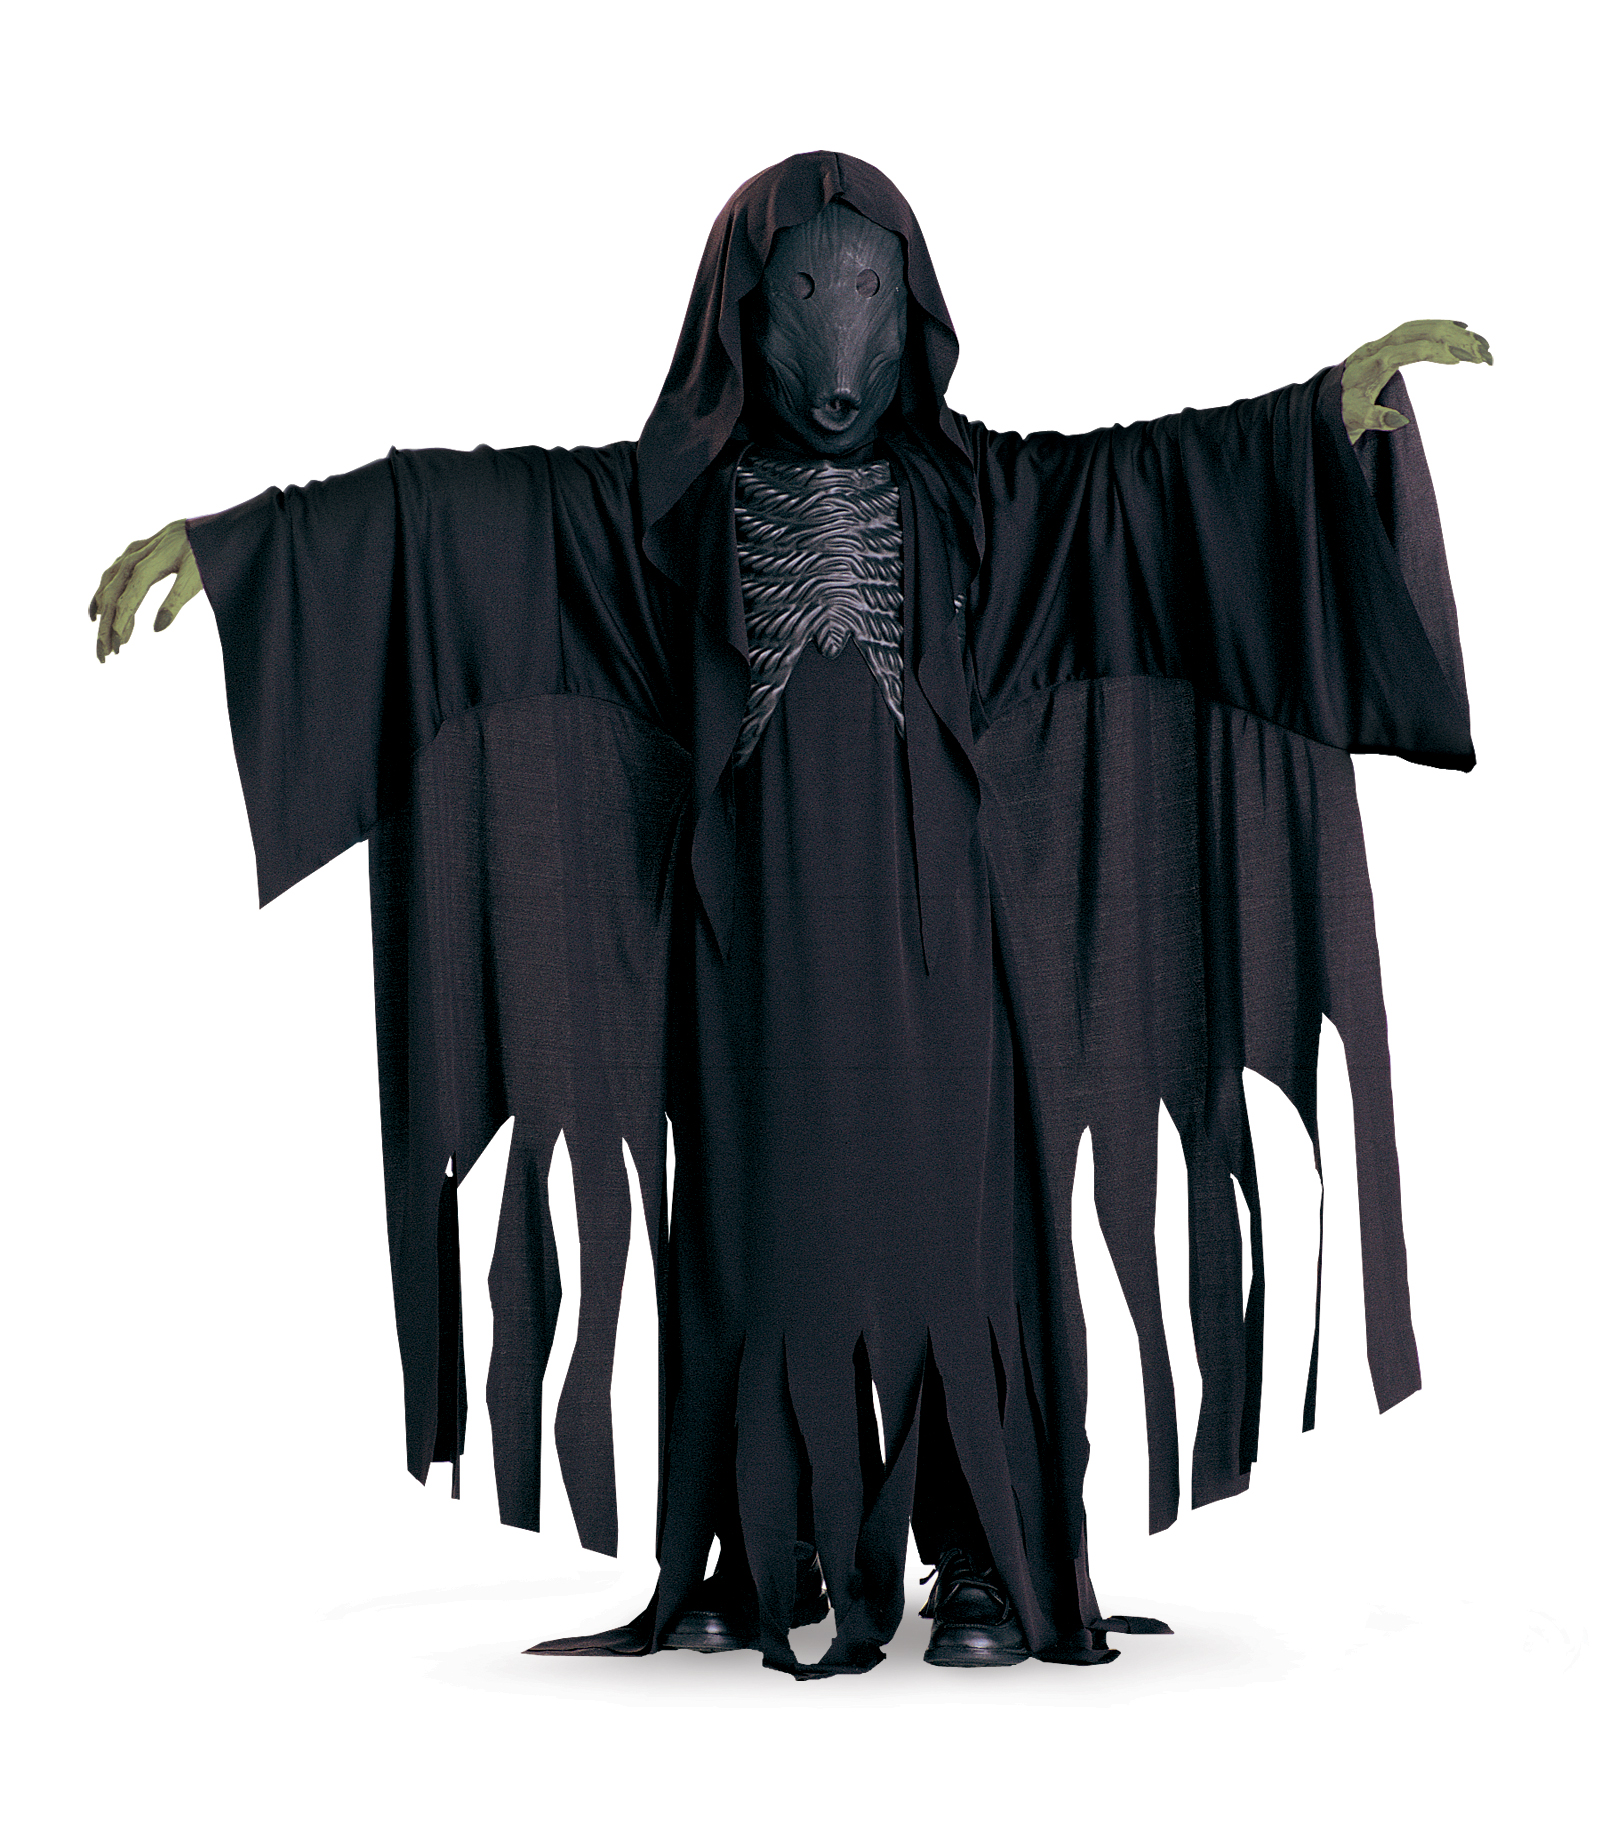 Harry Potter Dementor Child Costume | BuyCostumes.com